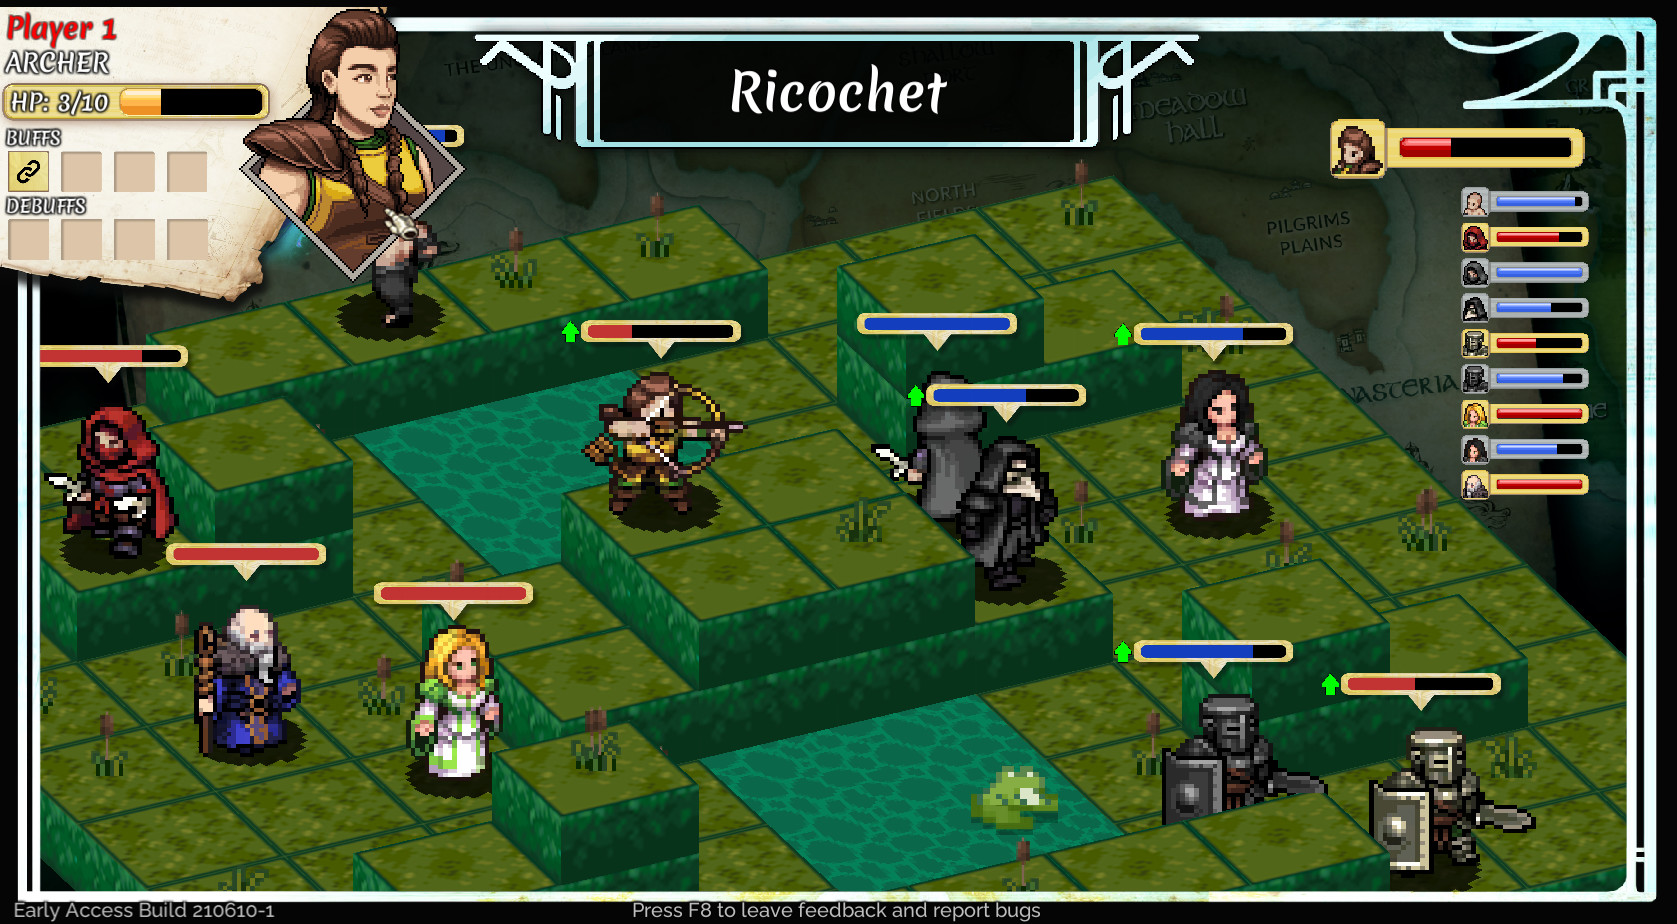 Isometric combat unfolds in Live by the Sword: Tactics. The characters are fighting in the middle of a grassy field, with two pools of water in the center.